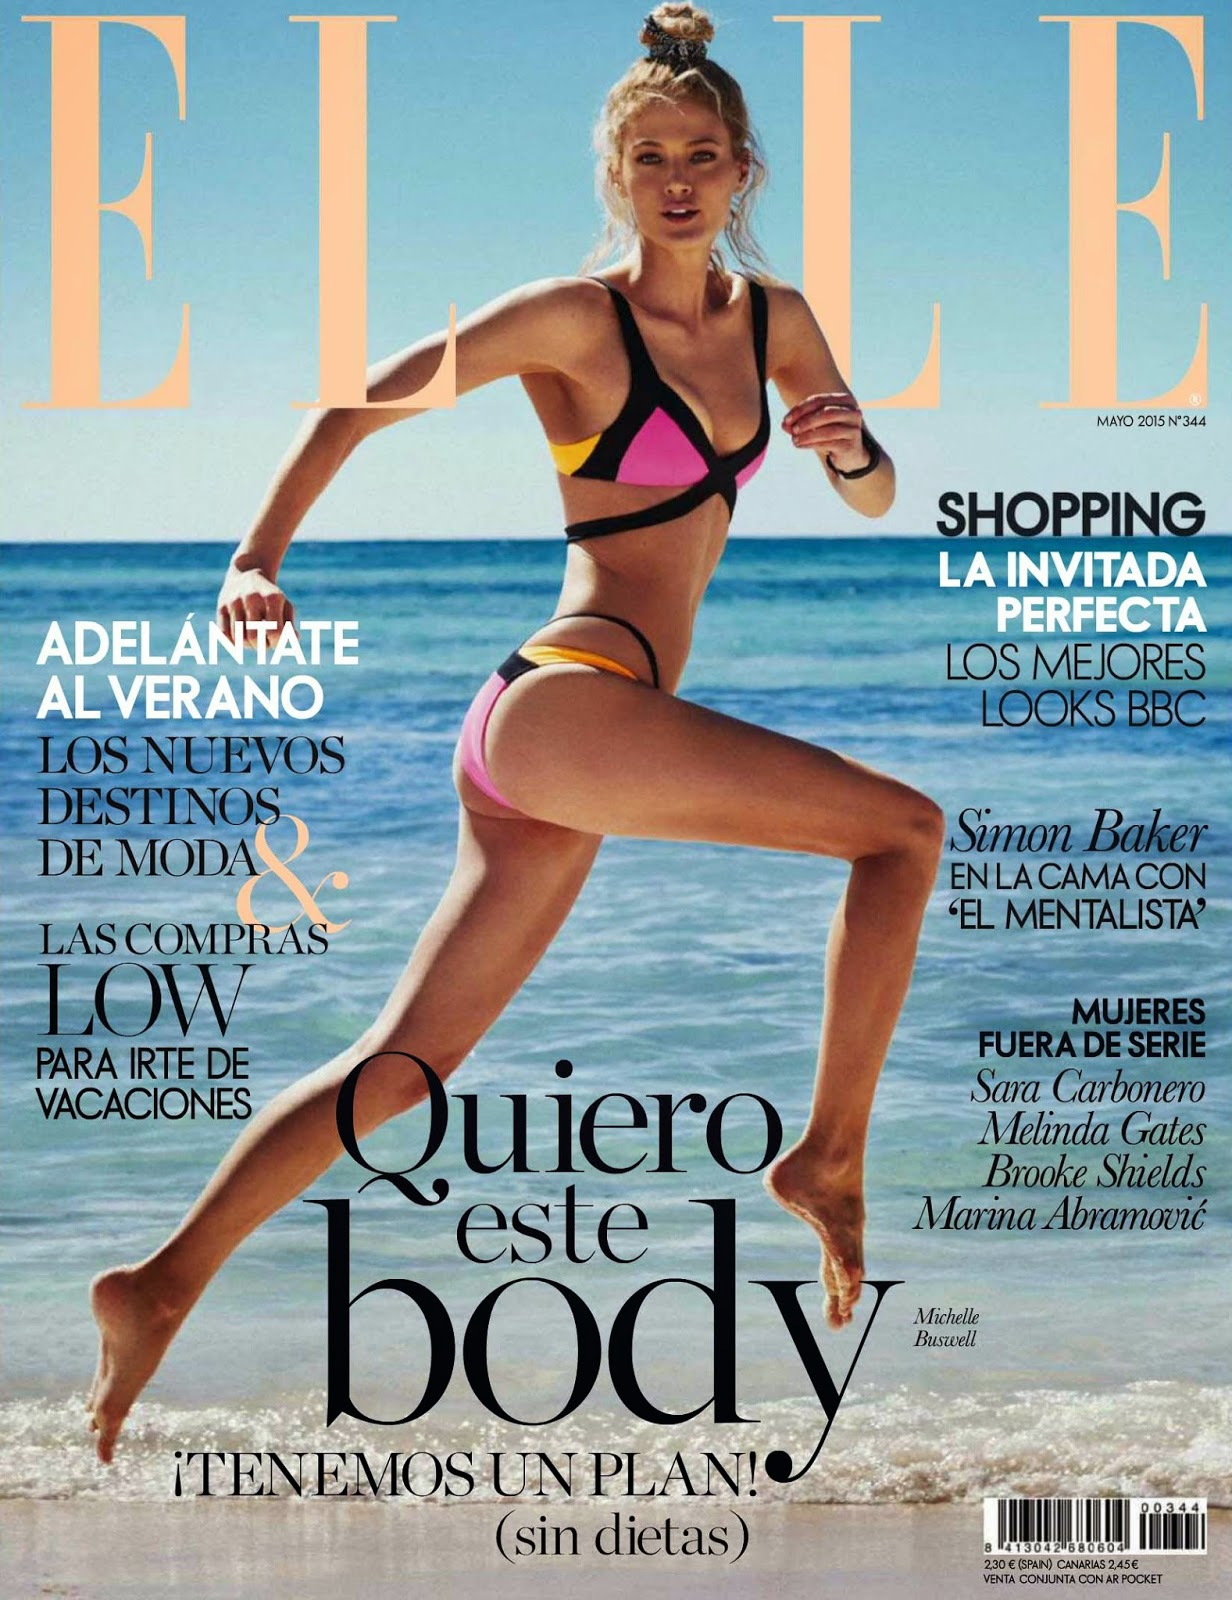 Model @ Michelle Buswell by Xavi Gordo for Elle Spain, May 2015